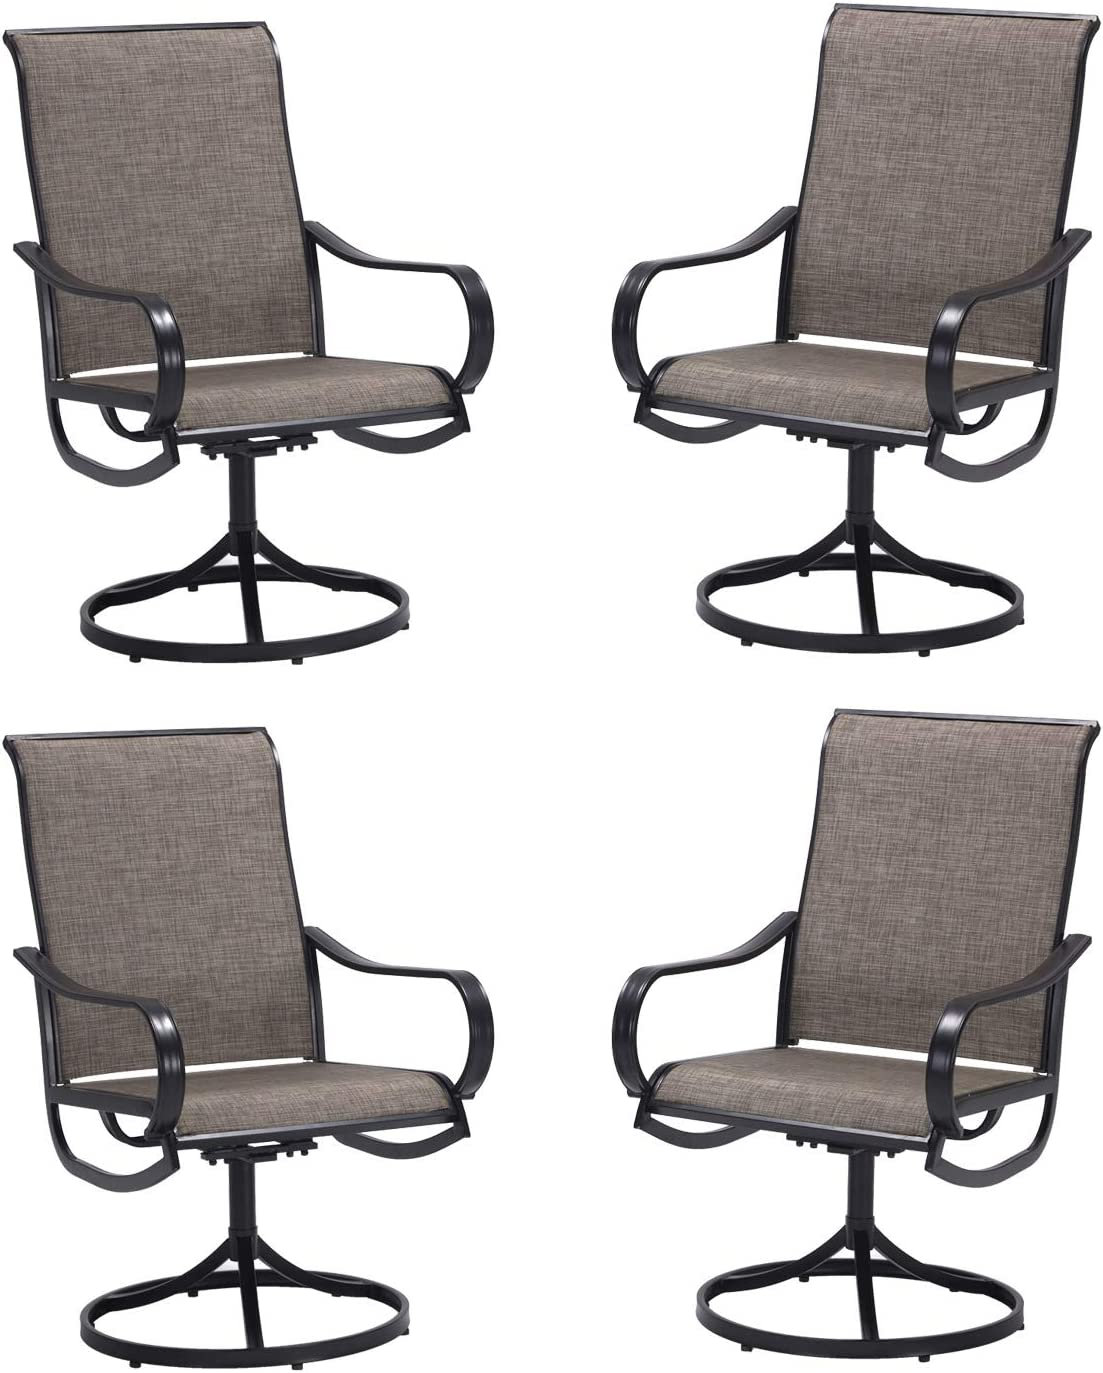 Super beauty product restock quality top VICLLAX Patio Chairs Set Max 79% OFF of Outdoor Swivel Dining 4 Metal